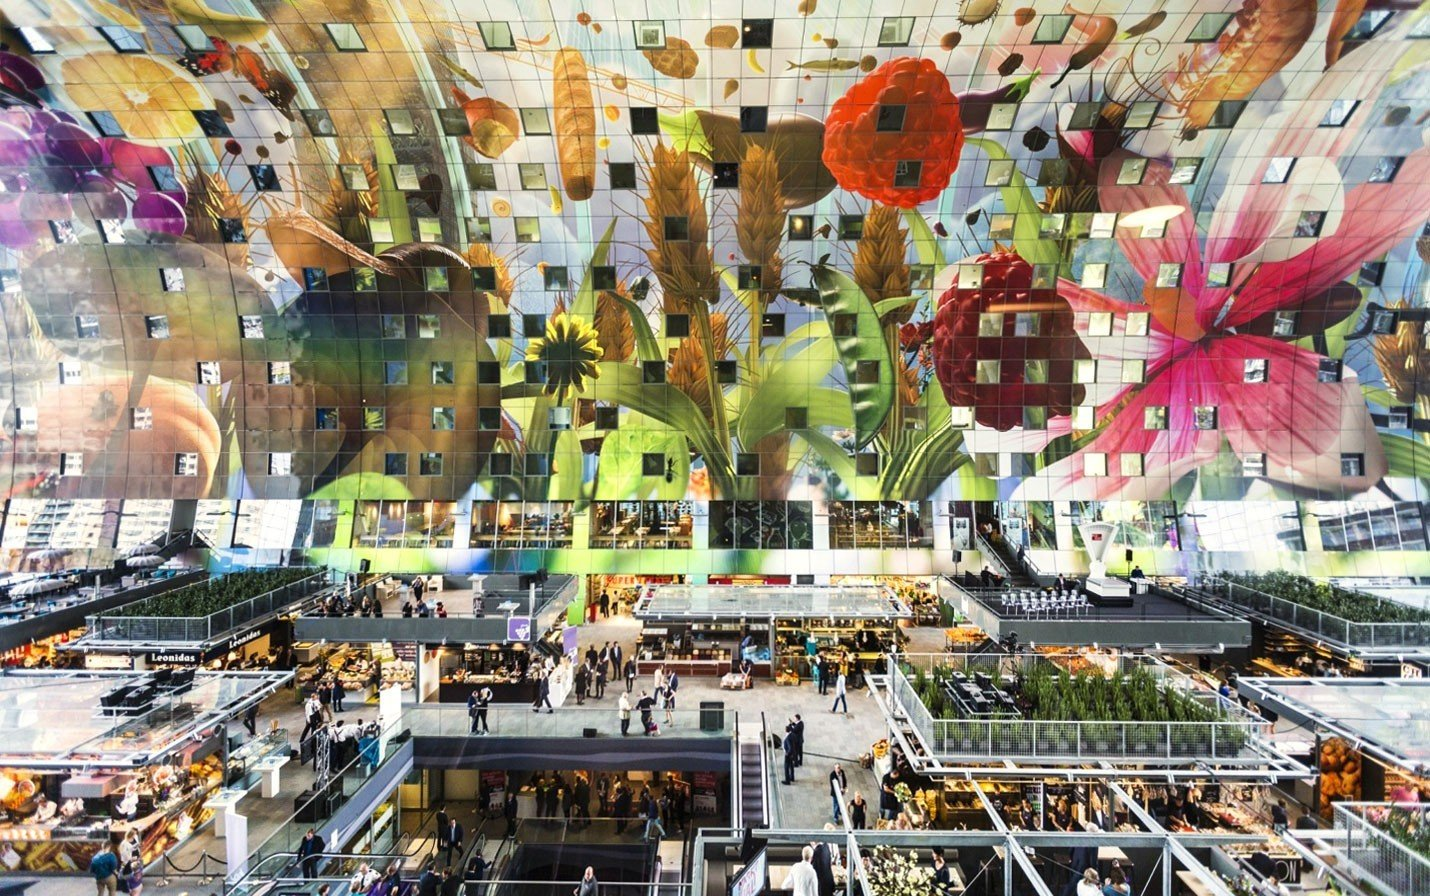 Food + Drink crowd metropolis City shopping mall retail cityscape plaza toy colorful decorated several